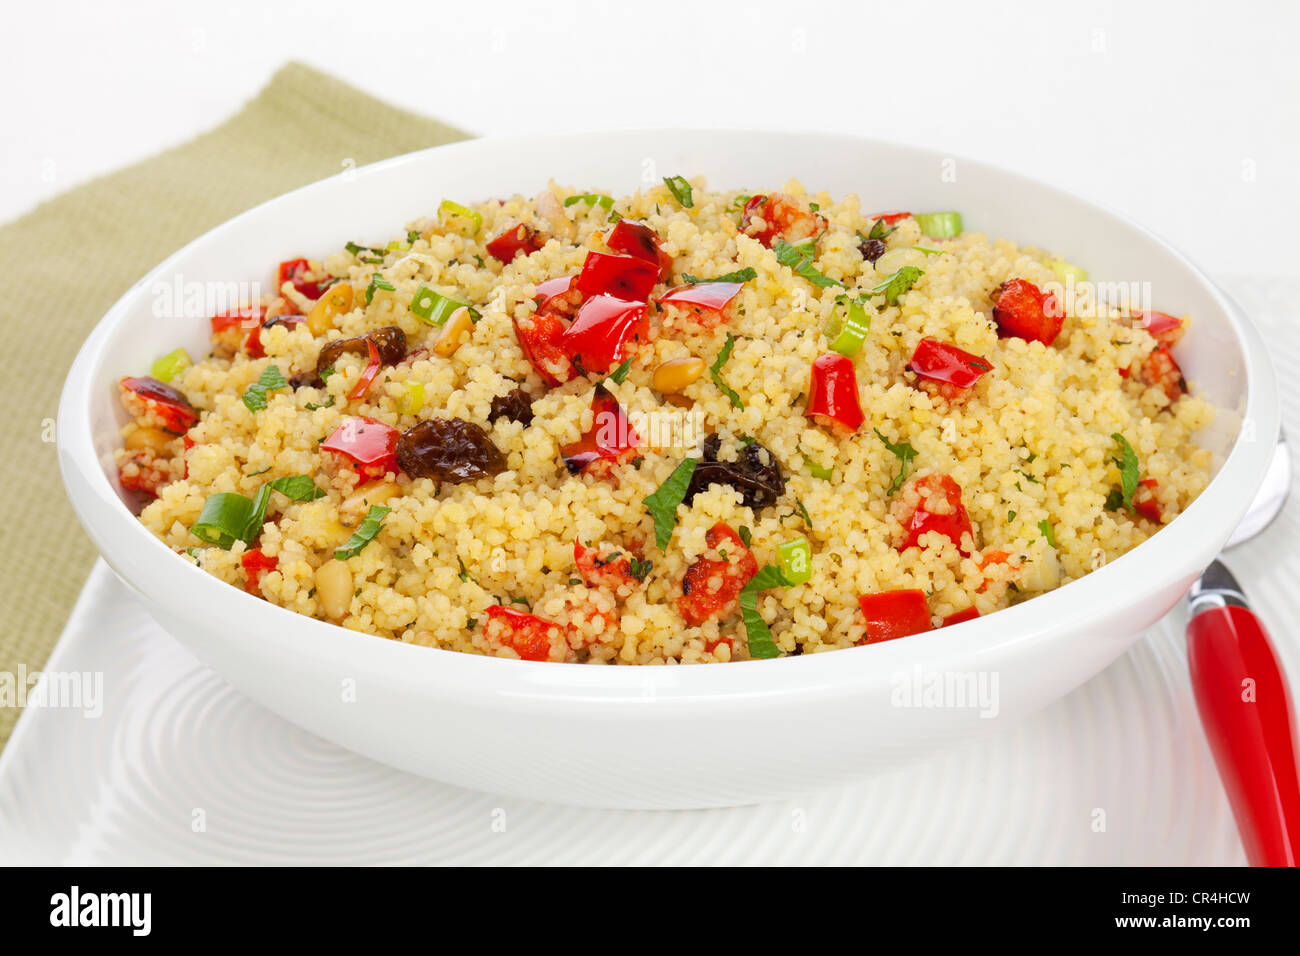 Couscous salad, with roasted red peppers, raisins, pine nuts, green onion and mint. Shallow DOF, focus on centre. - Stock Image